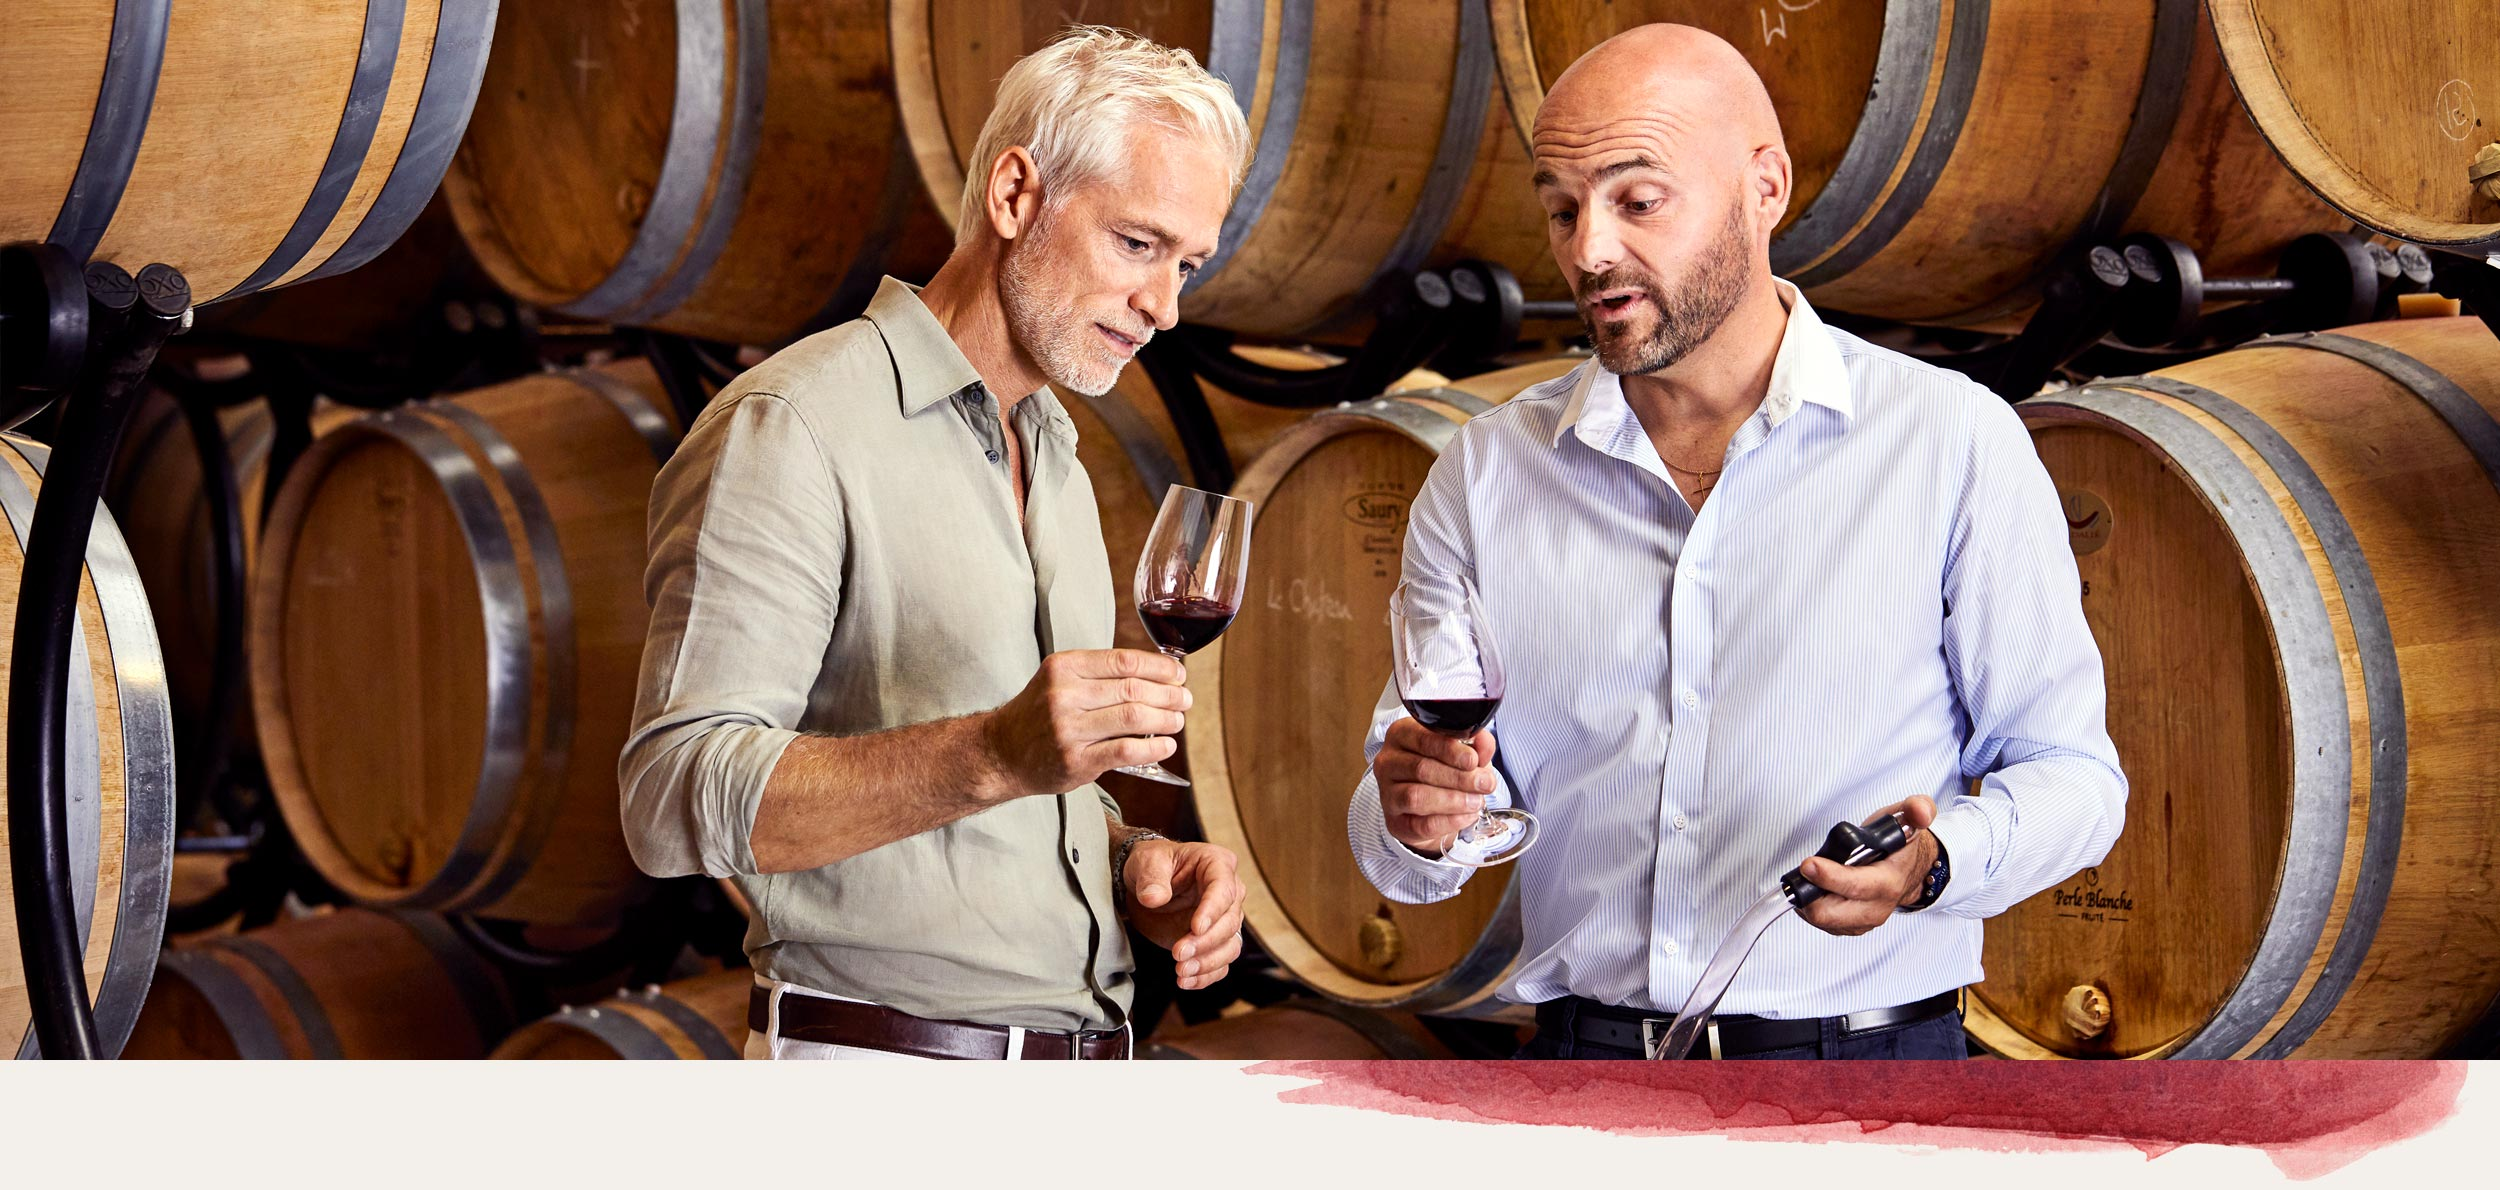 Create a wine in Bordeaux with leading experts like Nicolas Labenne